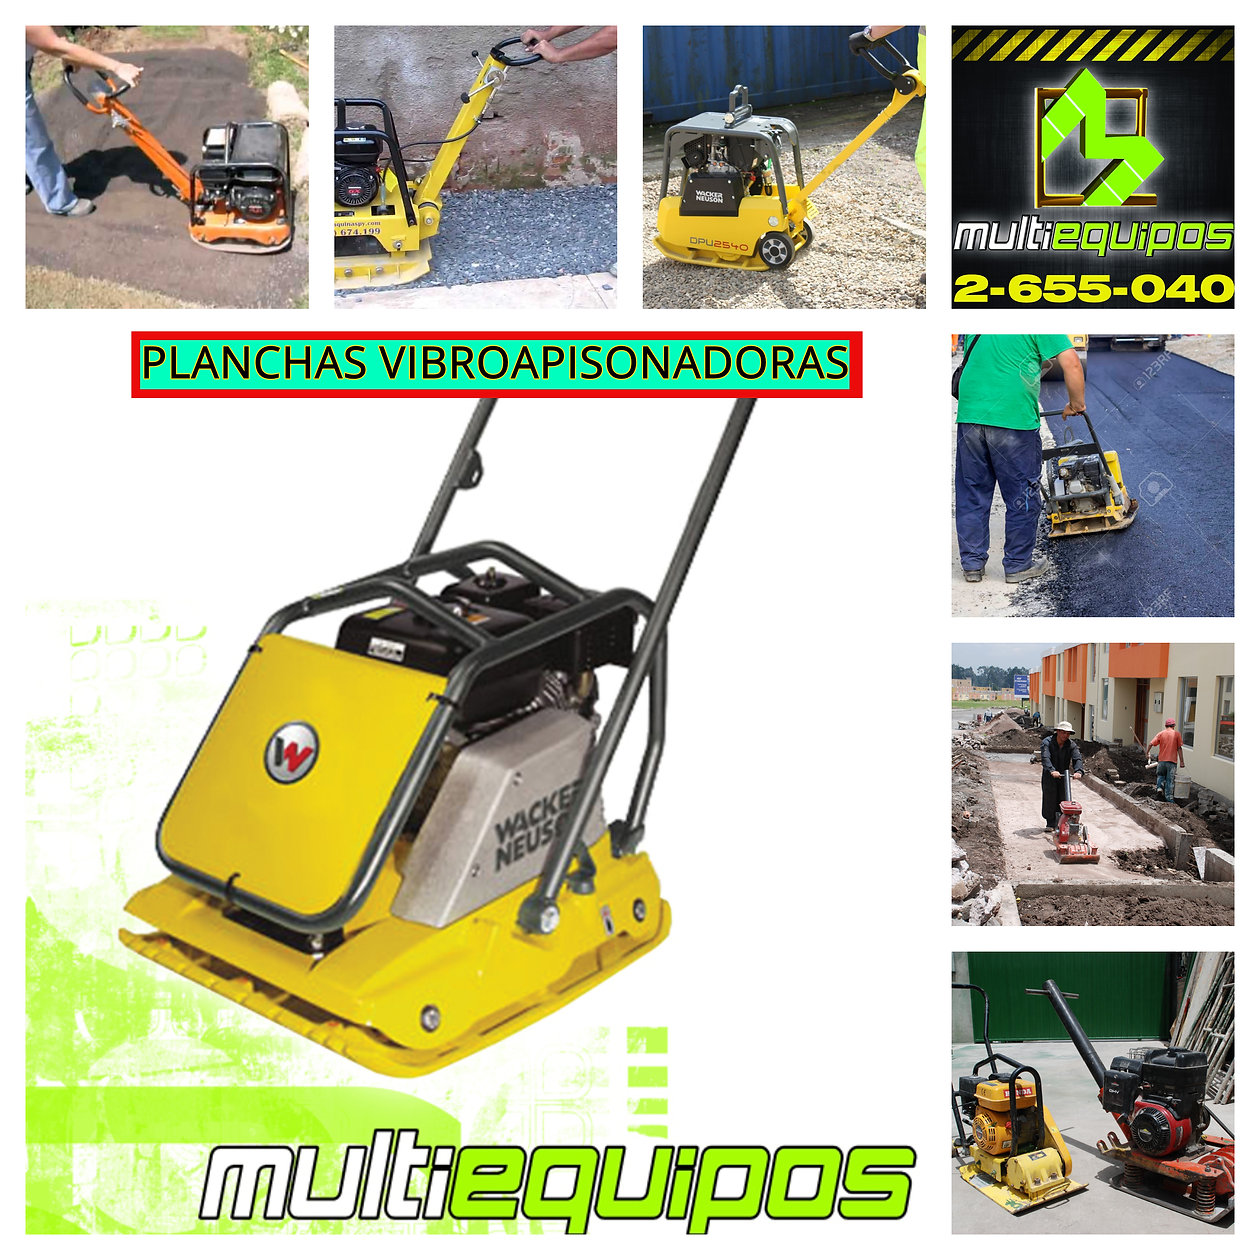 collage multiequipos PLANCHAS-1.jpg